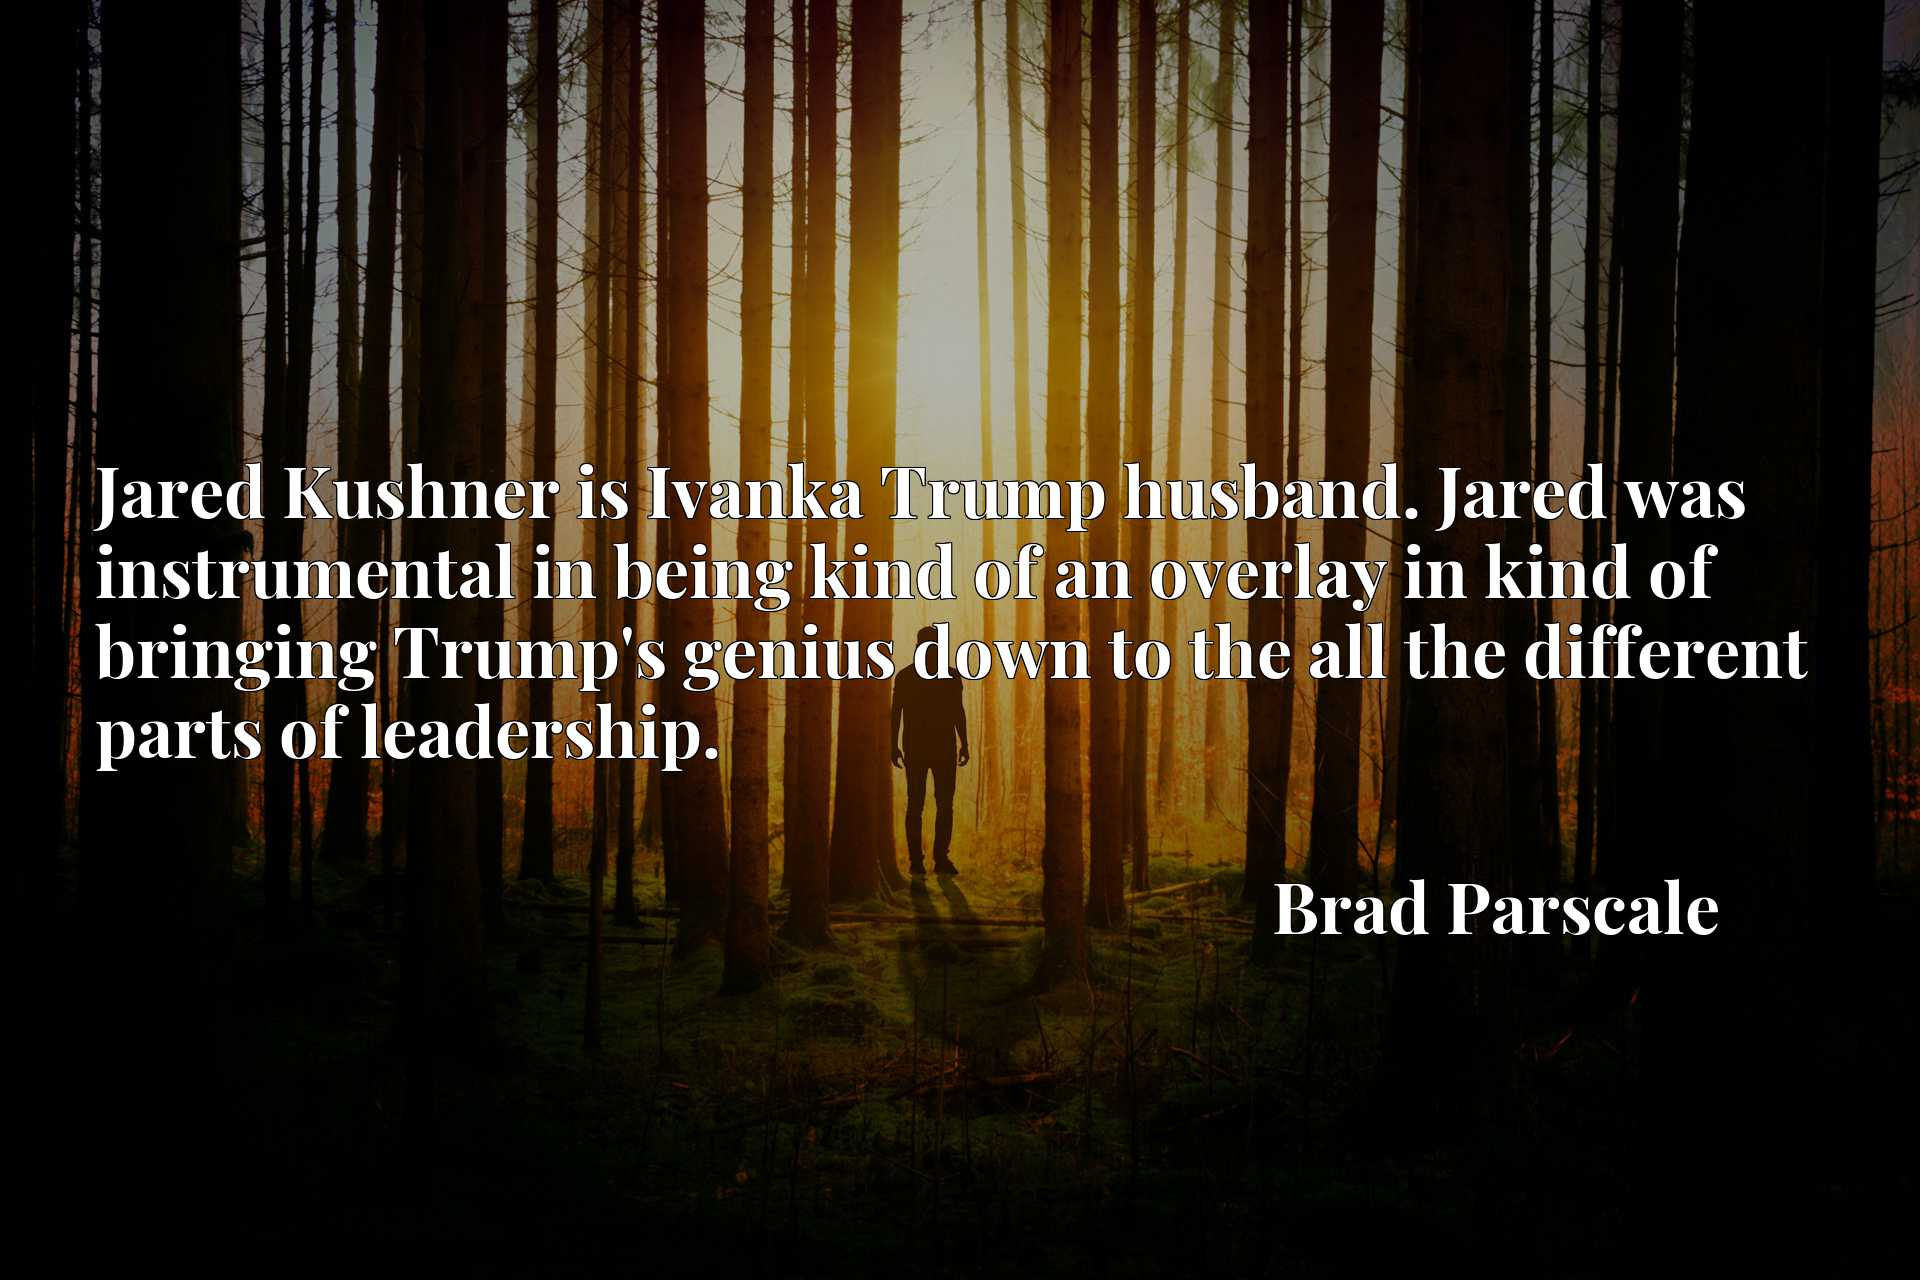 Jared Kushner is Ivanka Trump husband. Jared was instrumental in being kind of an overlay in kind of bringing Trump's genius down to the all the different parts of leadership.